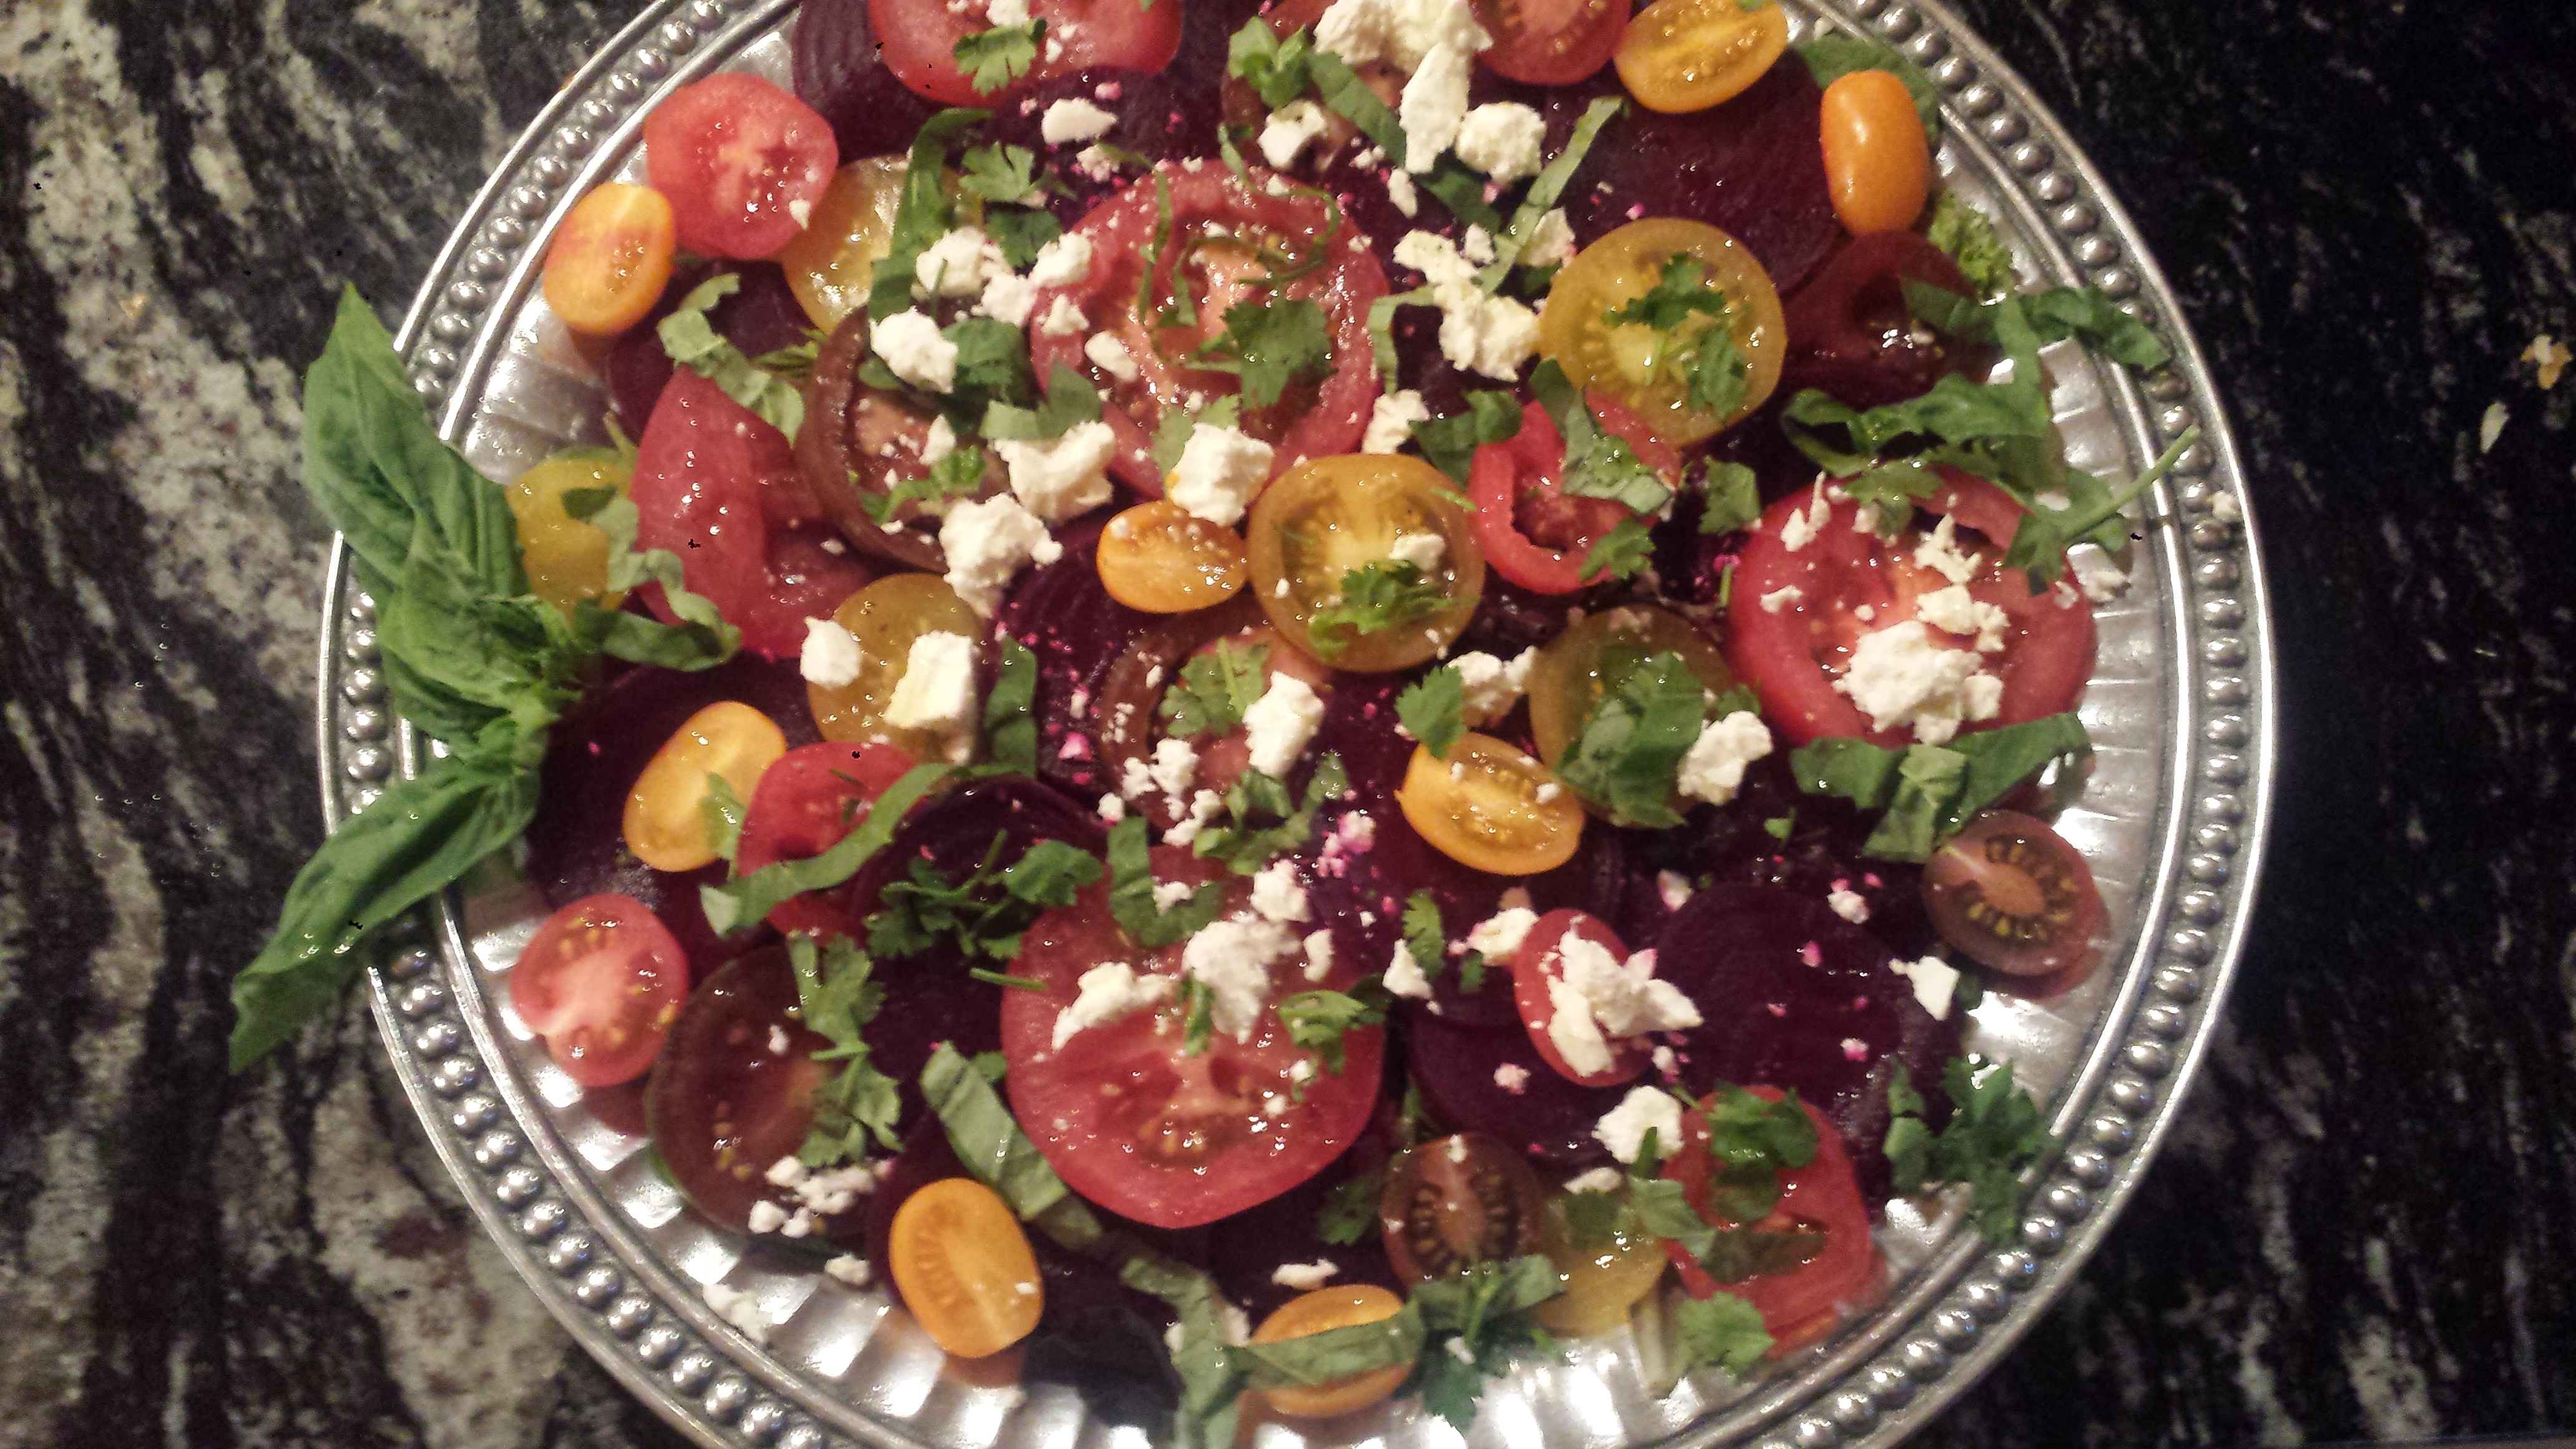 Beetroot salad with garlic: simplicity in variety